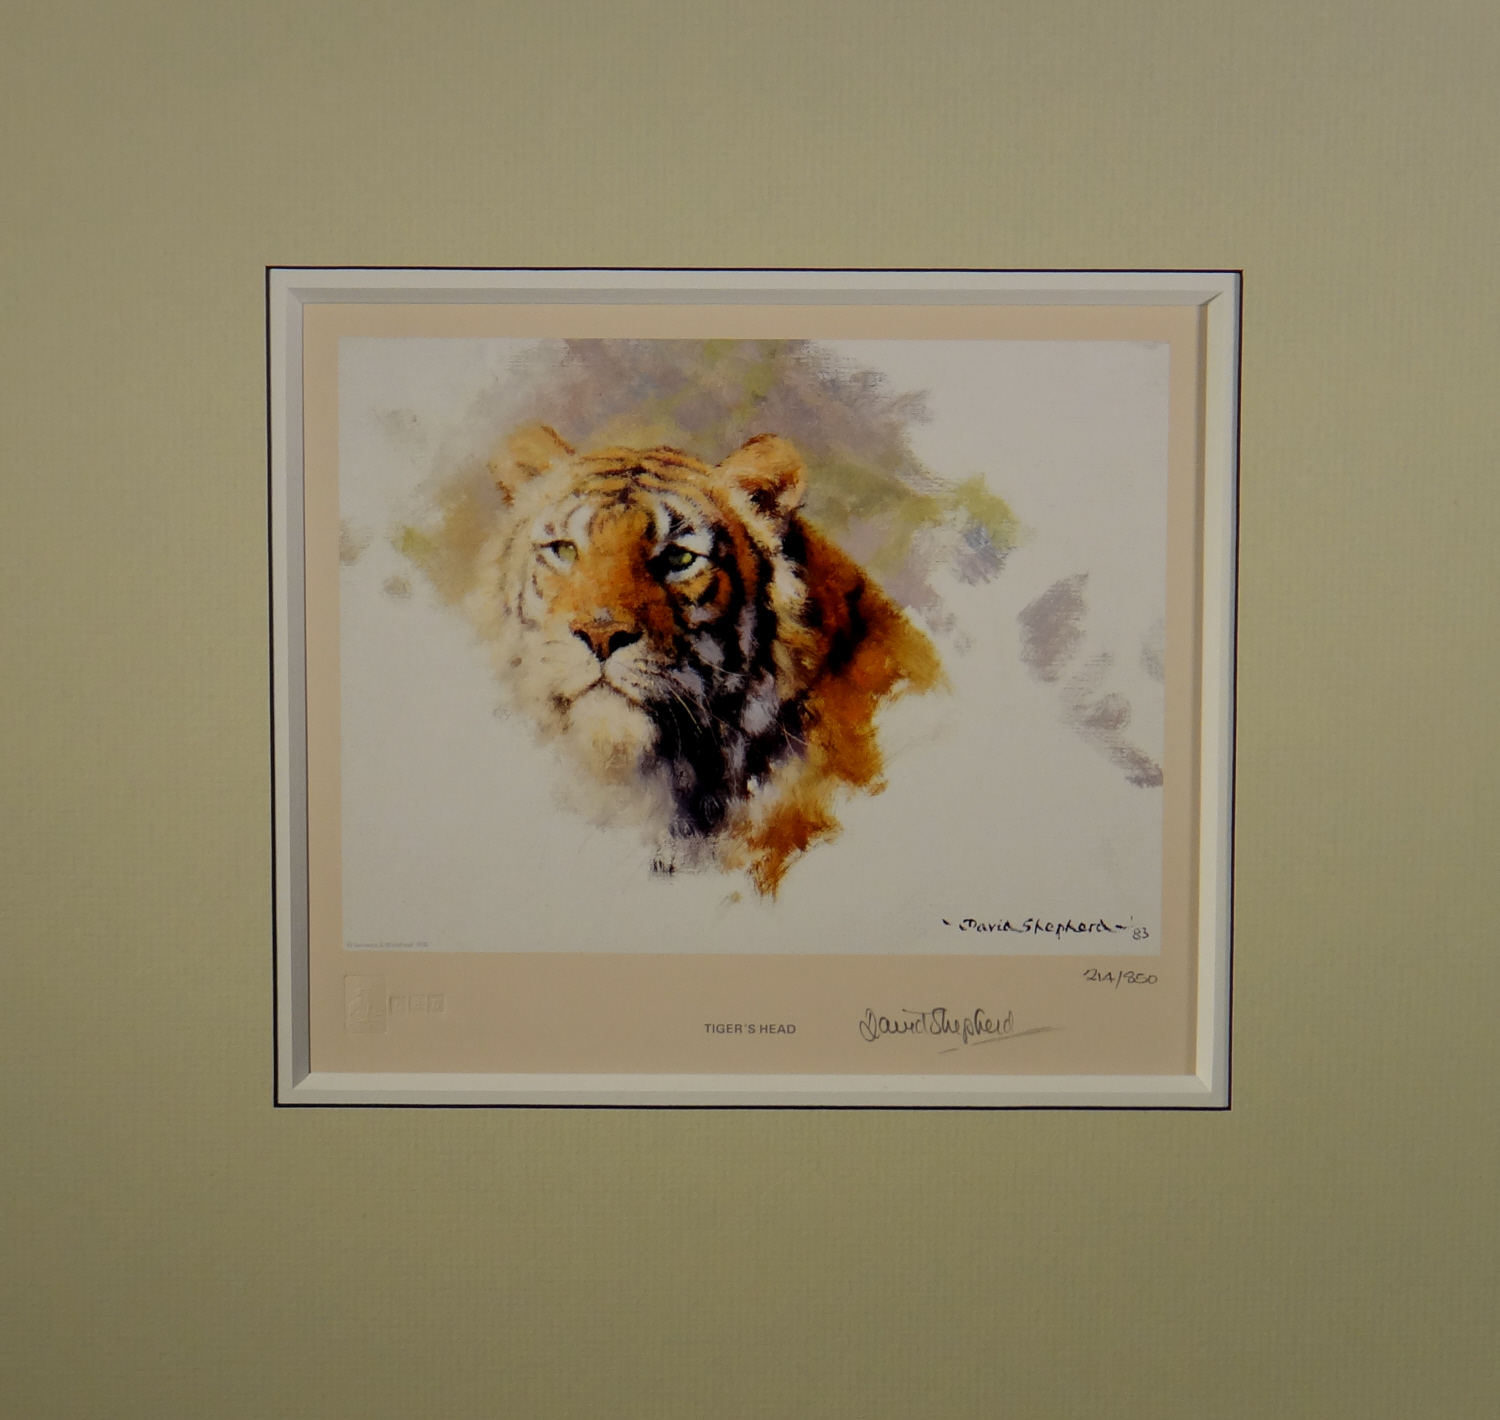 david shepherd,tiger's head, 1983, signed, limited edition, print